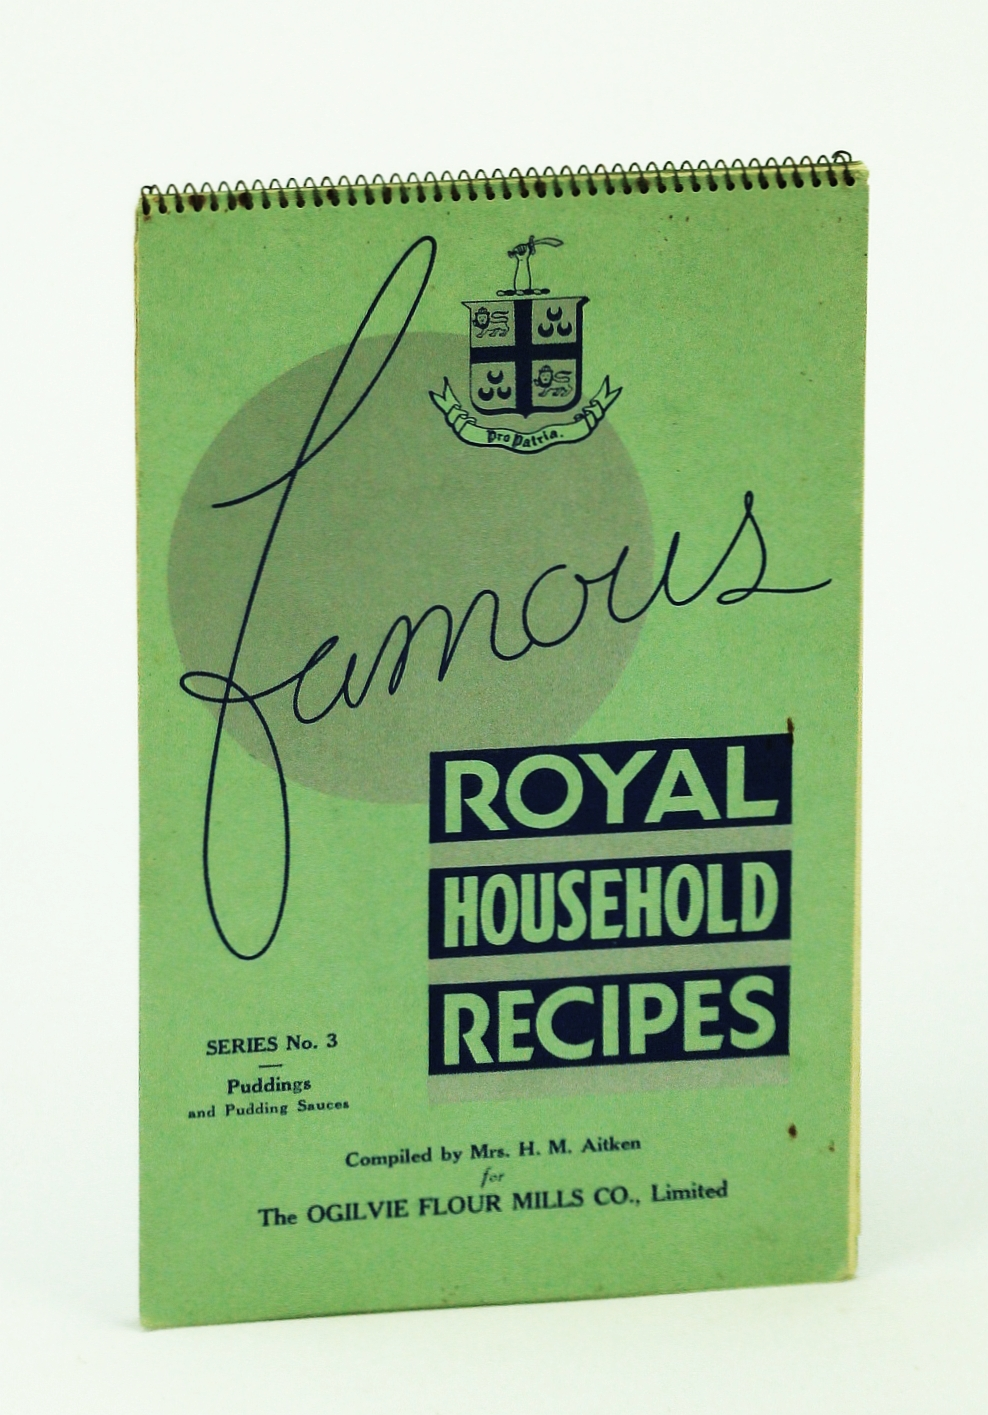 Image for Famous Royal Household Recipes - Series No. 3 (Three): Puddings and Pudding Sauces